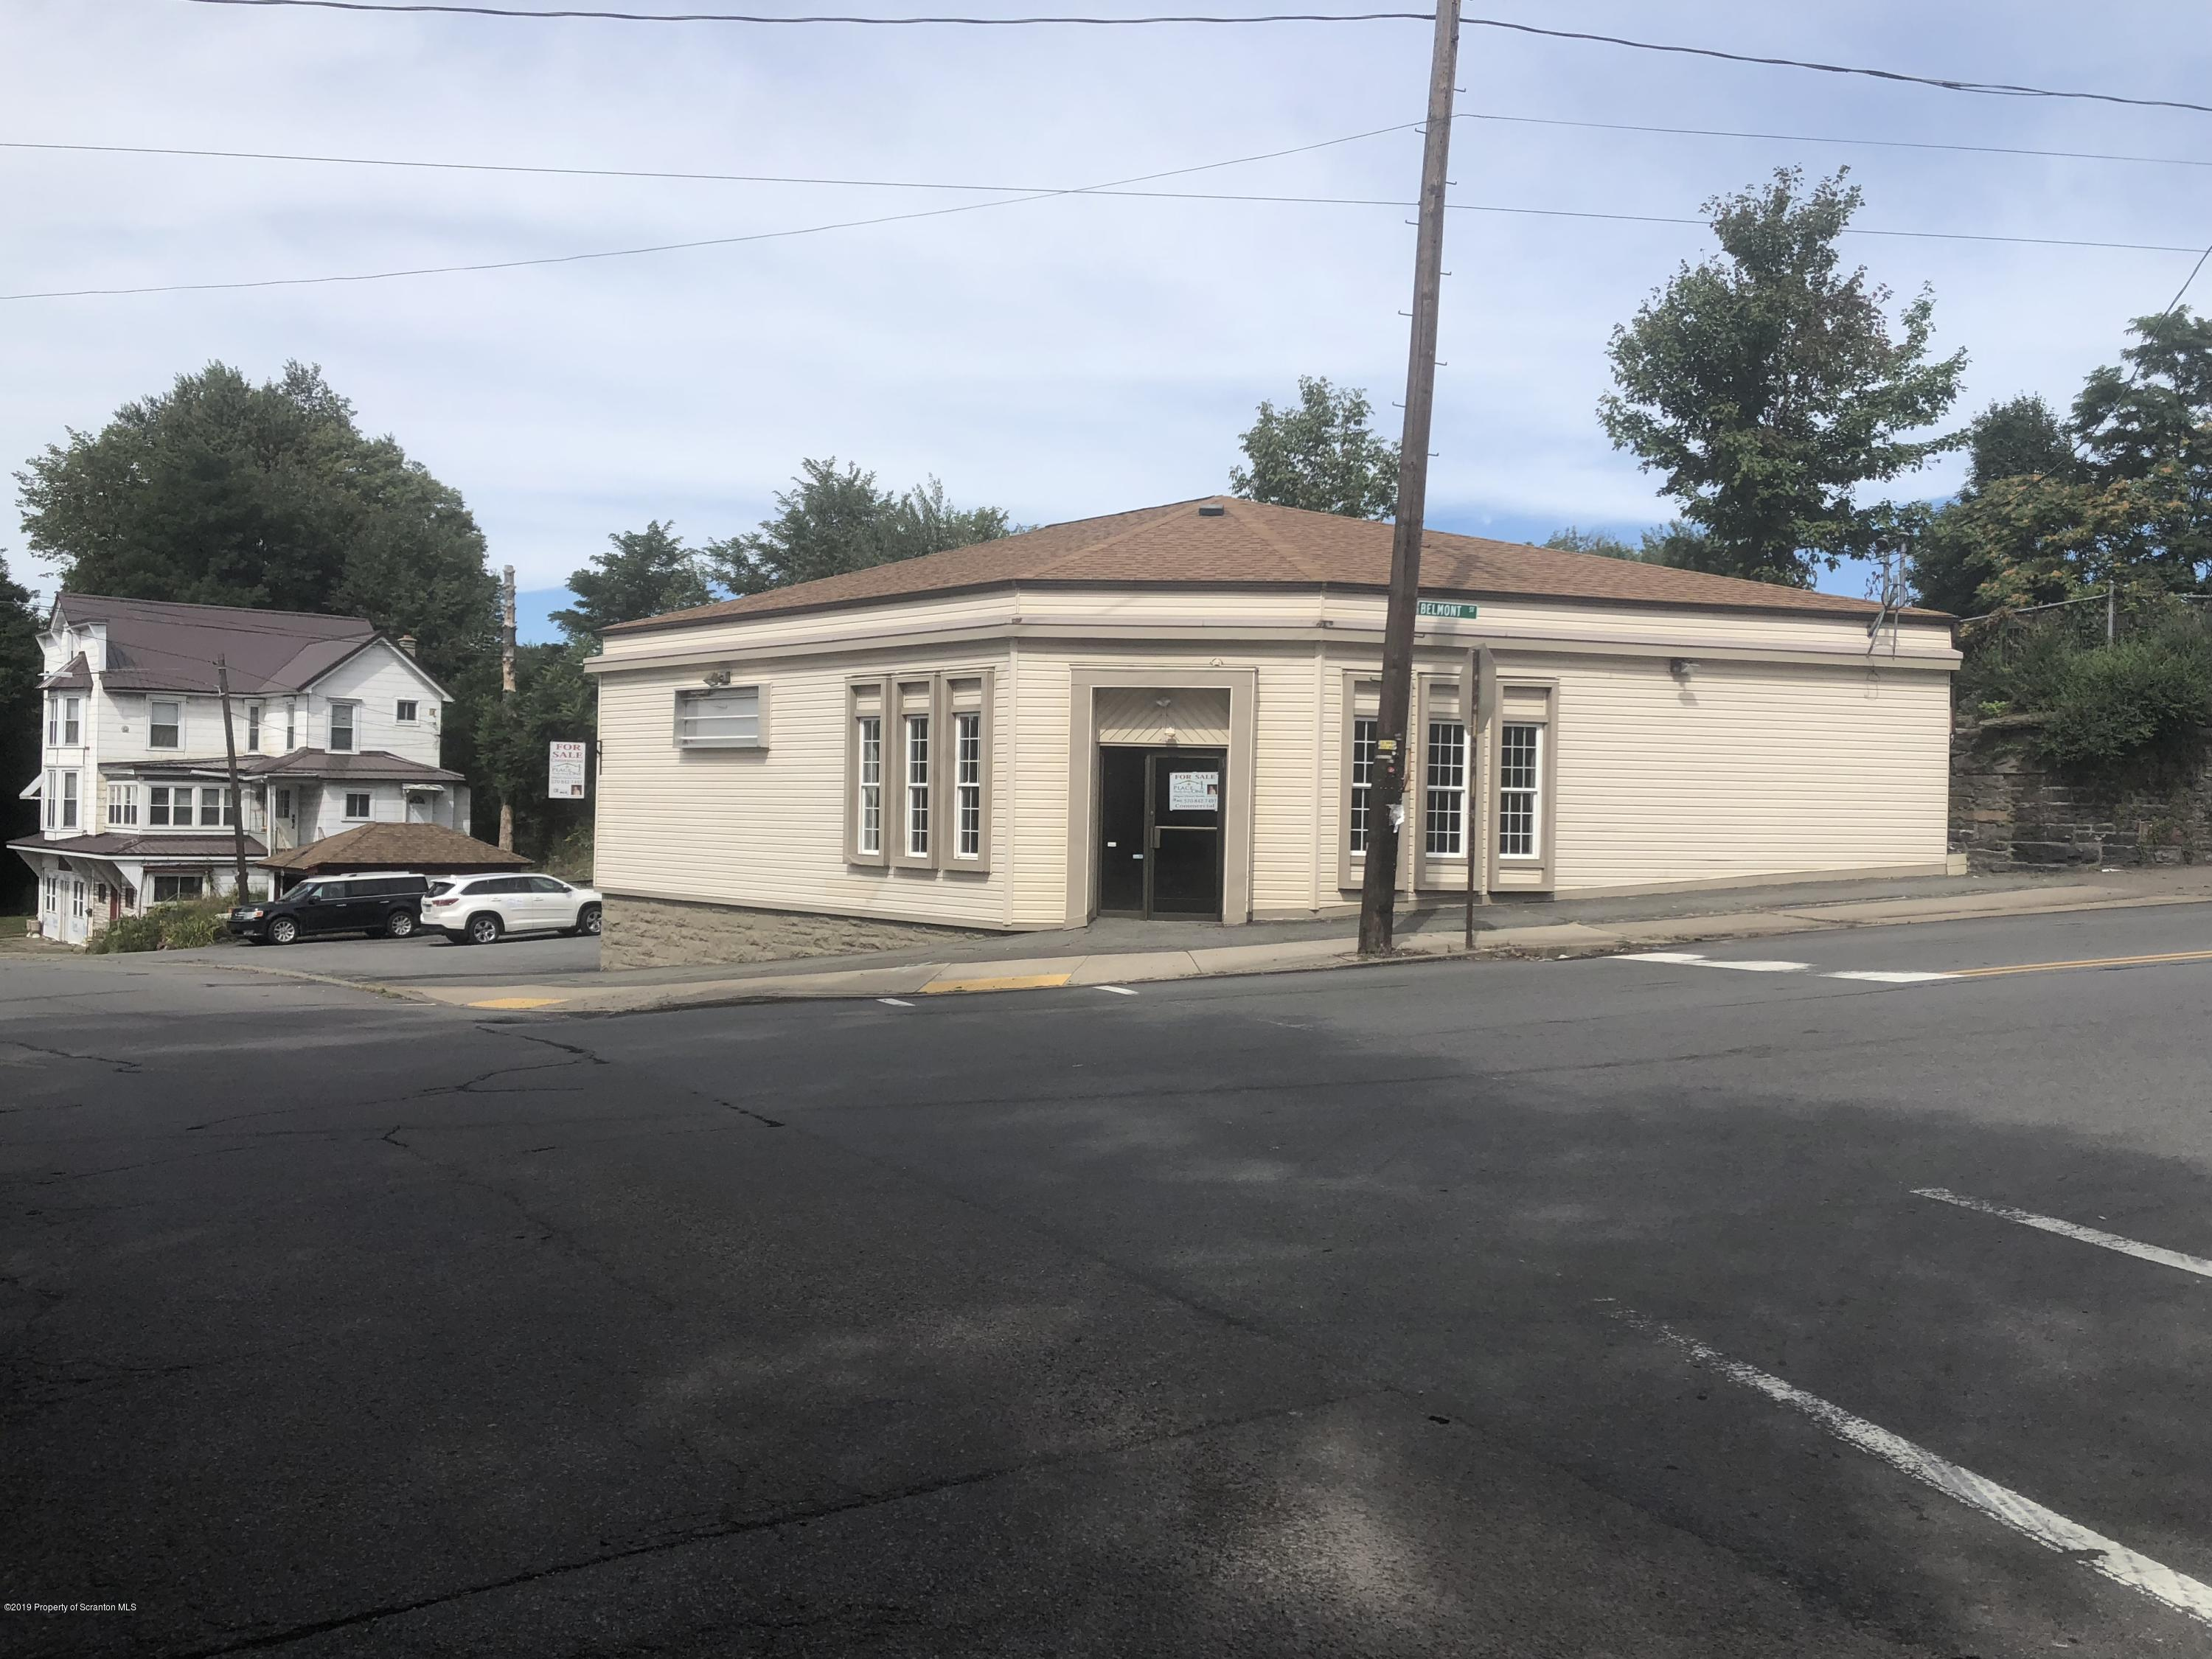 99 Church (Belmont/Canaan/Church), Carbondale, Pennsylvania 18407, ,1 BathroomBathrooms,Commercial,For Lease,Church (Belmont/Canaan/Church),19-5360